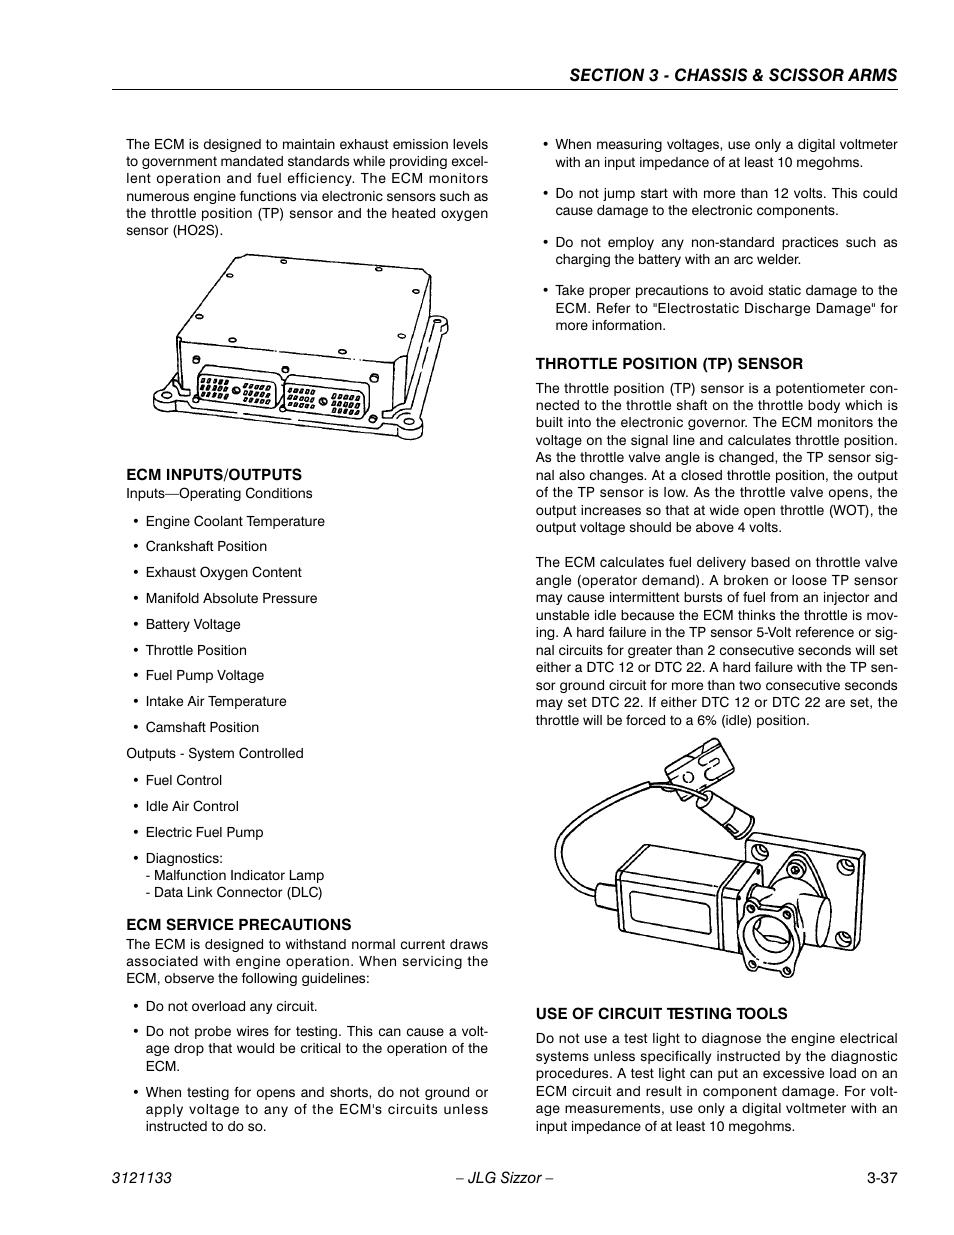 JLG 4394RT Service Manual User Manual   Page 73 / 228   Also for: 3394RT  Service Manual